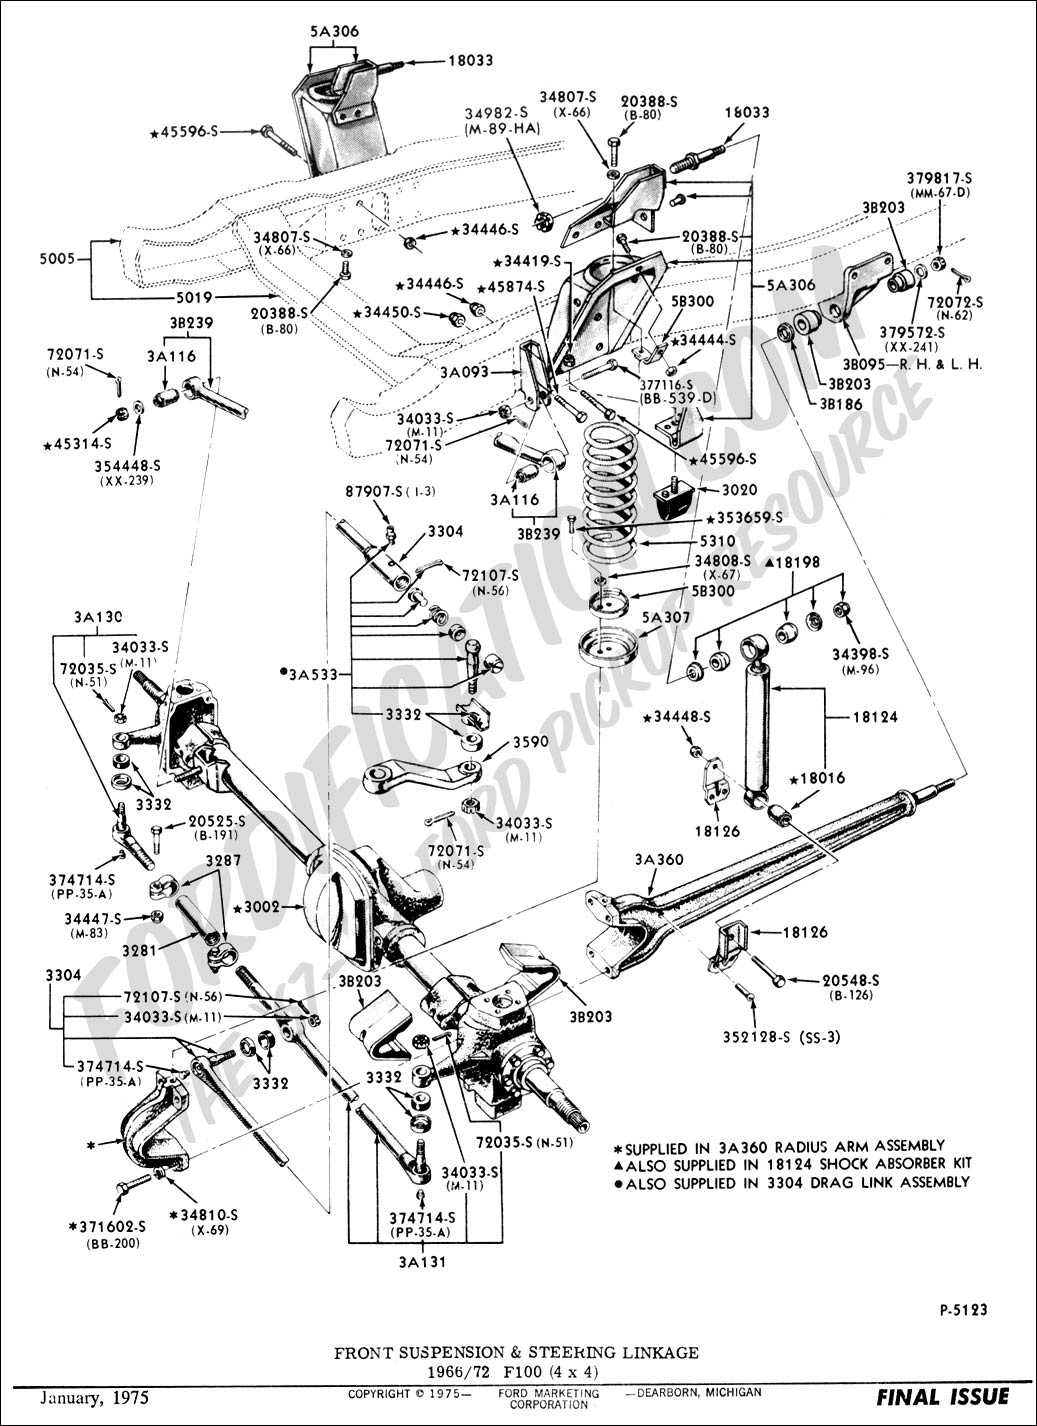 1978 f250 steering column wiring diagram 1970 ford truck steering column wiring diagram 1988 ford f 150 steering column diagram. ford. auto fuse ...